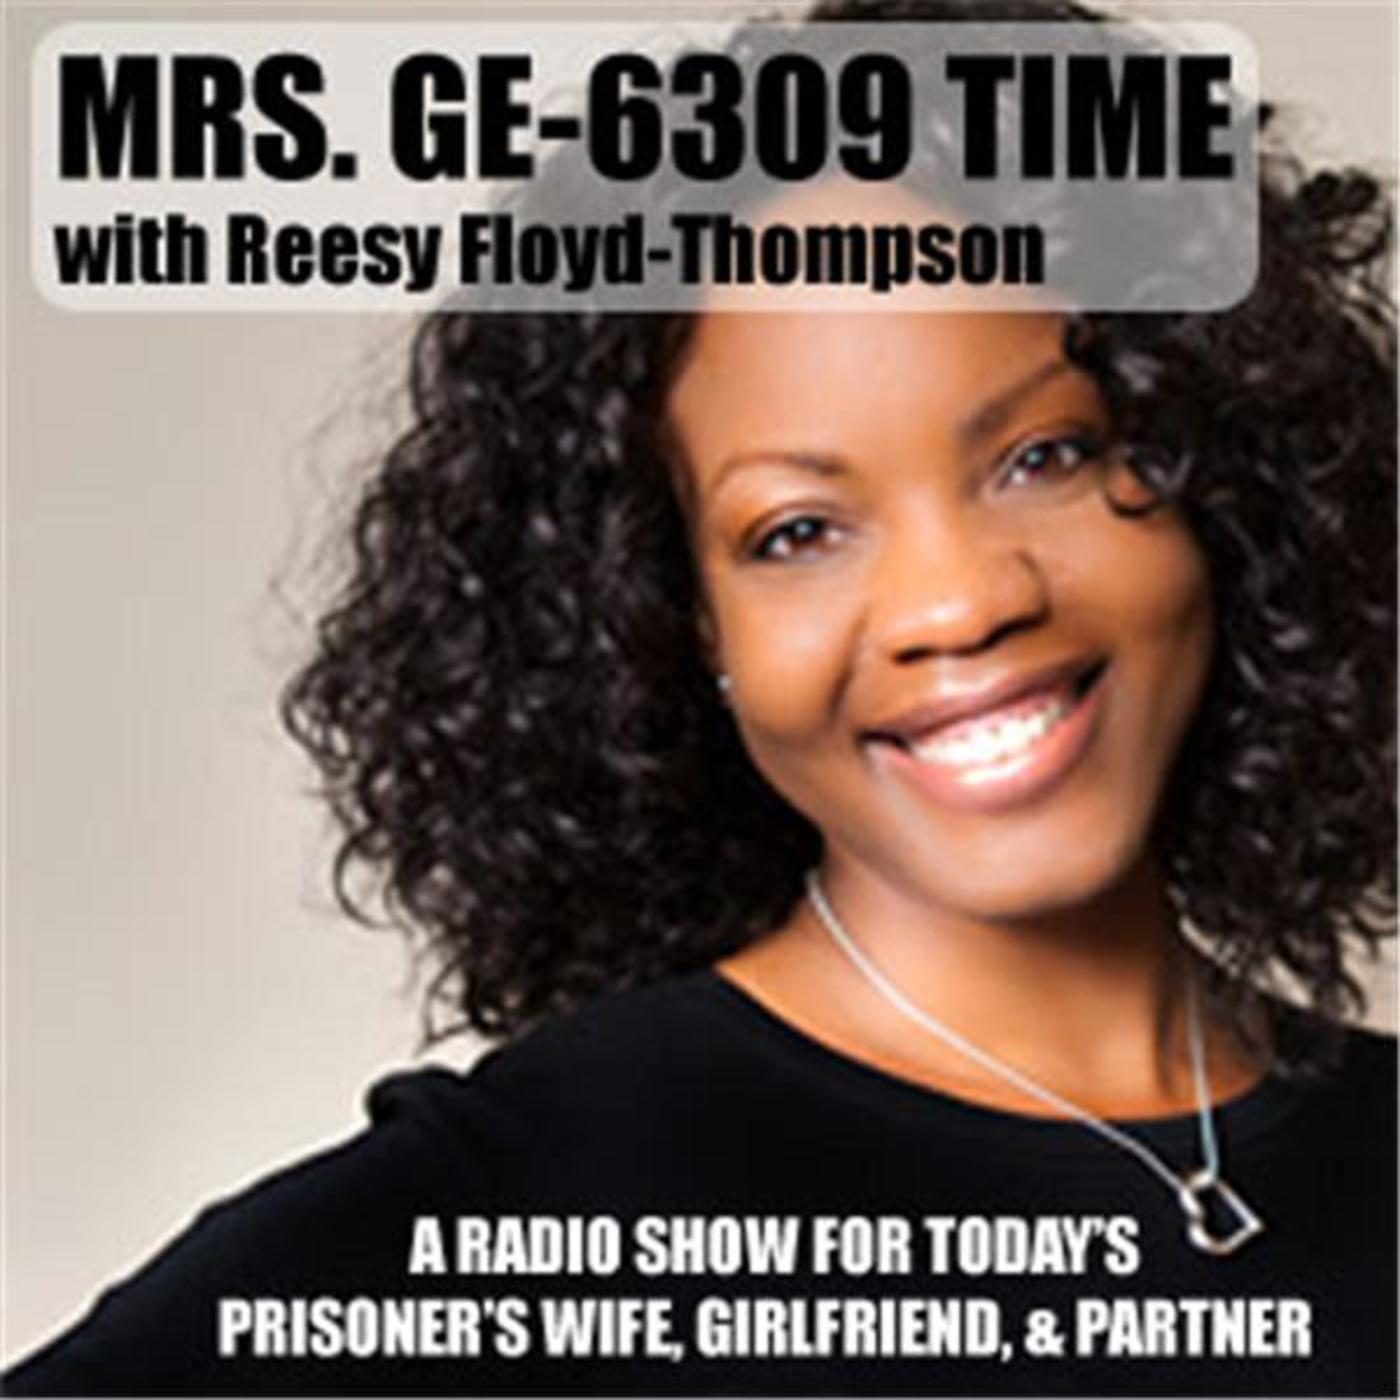 Mrs. GE-6309 Time with Reesy Floyd-Thompson